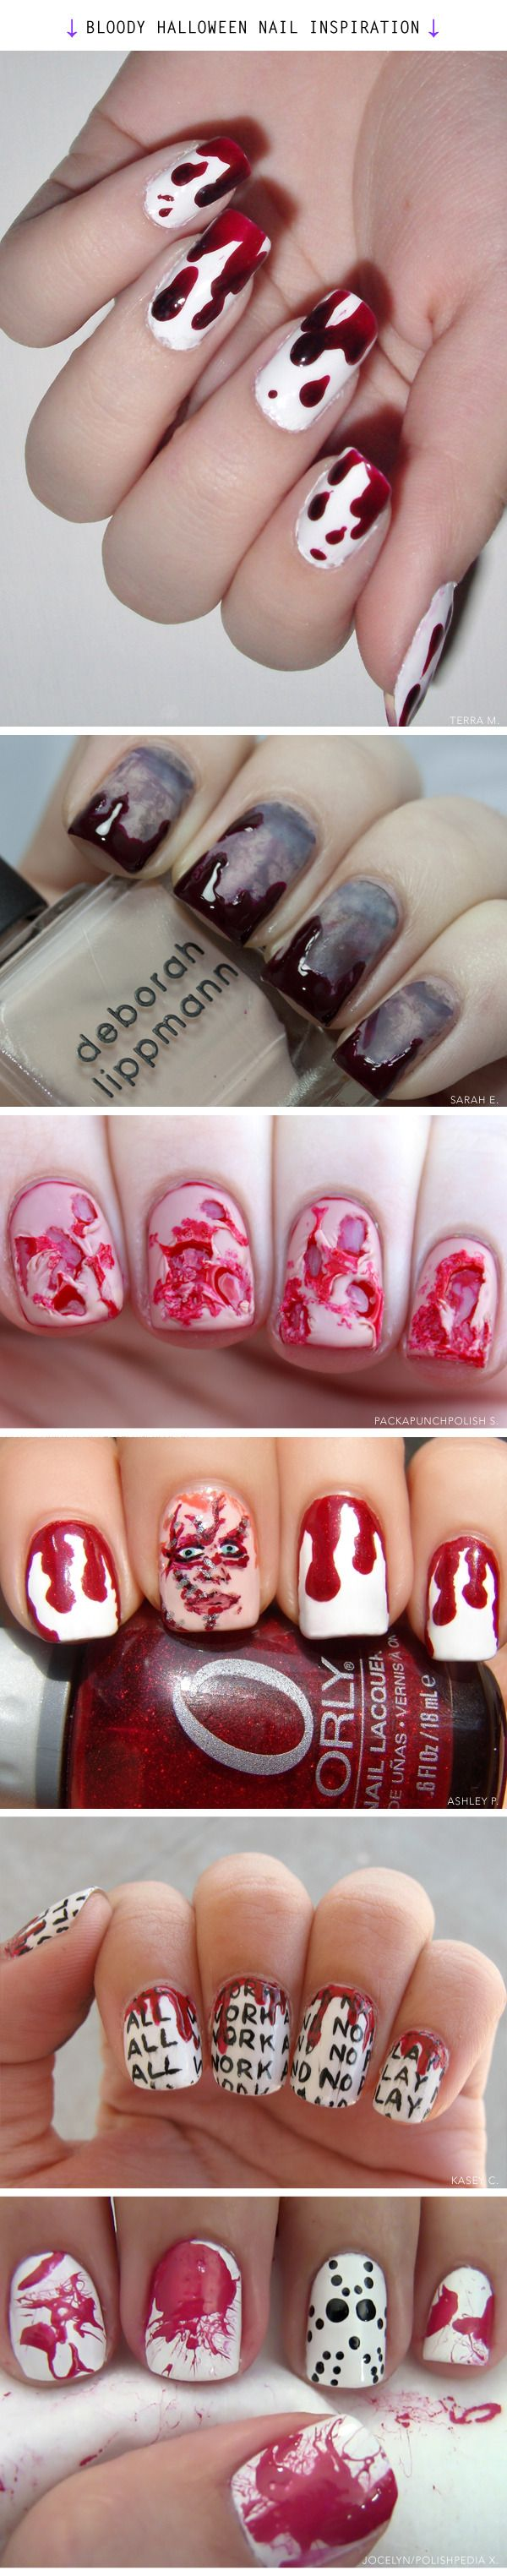 What a Vampire's Nails Really Look Like